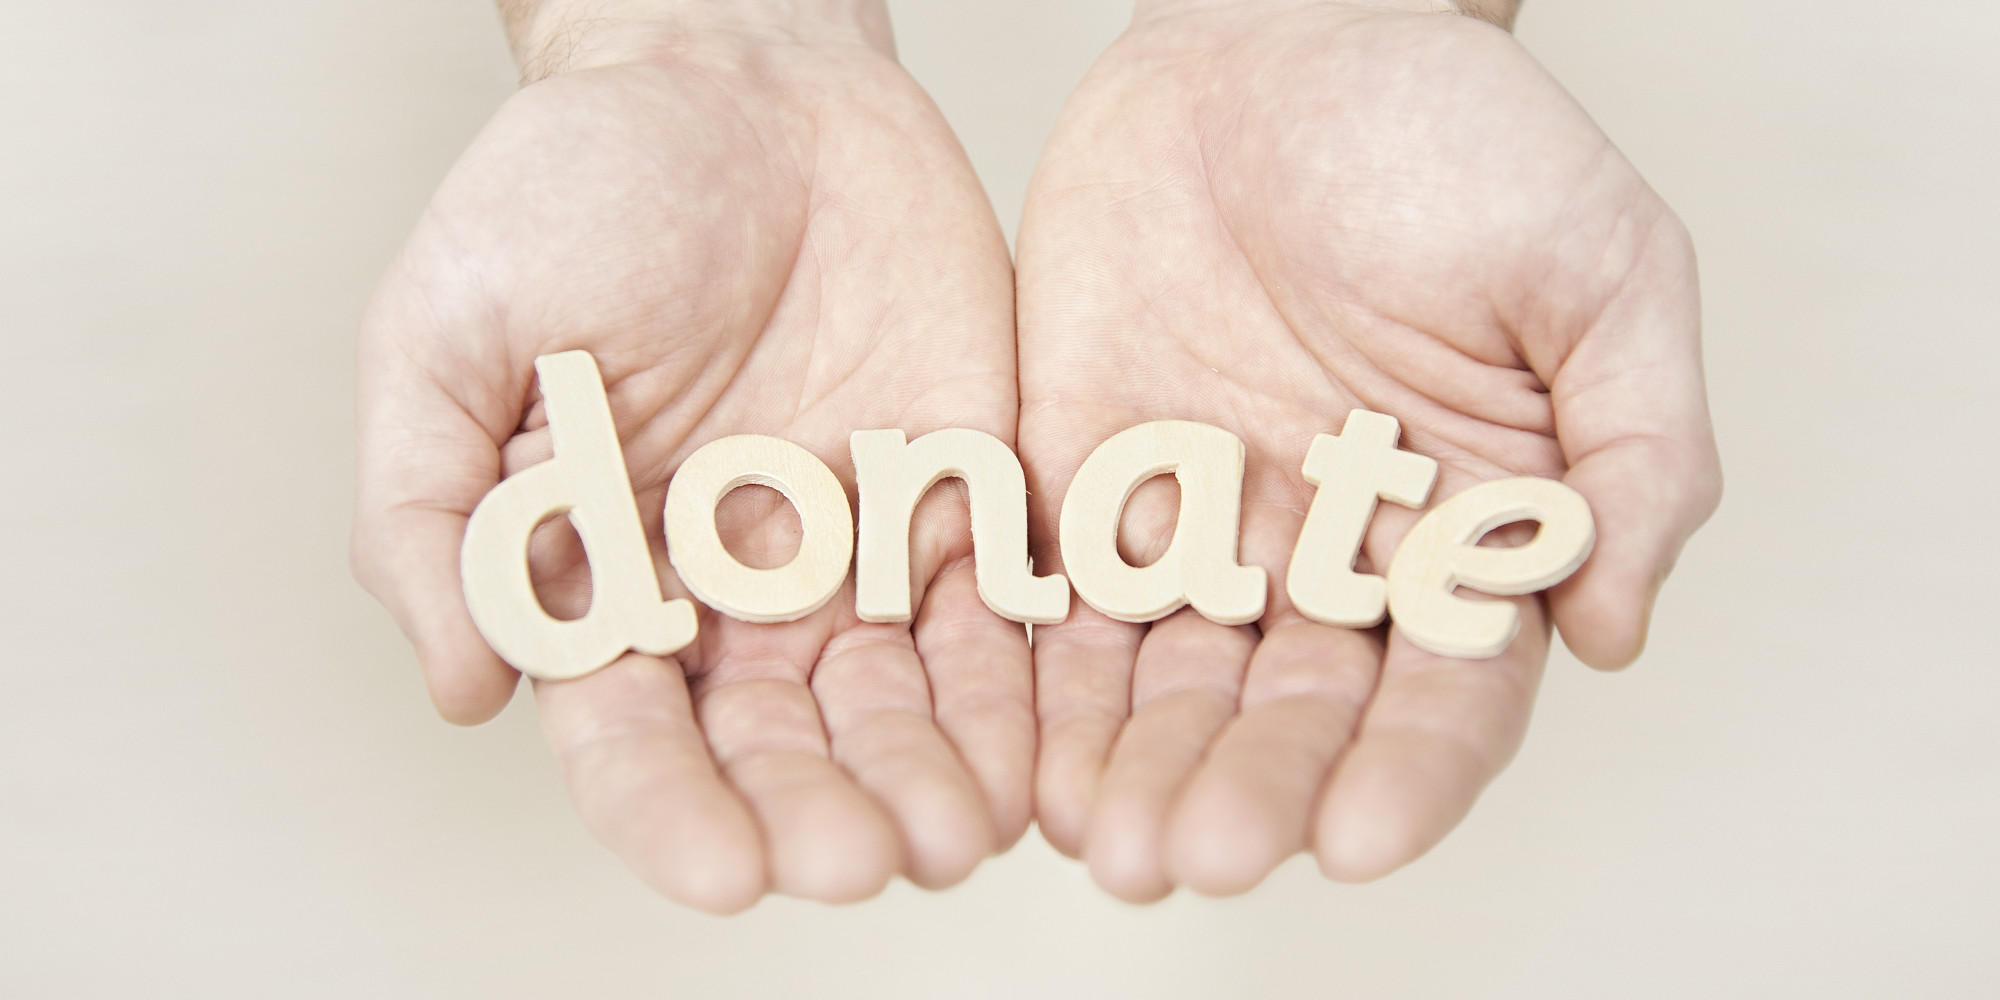 o-DONATING-TO-CHARITY-facebook